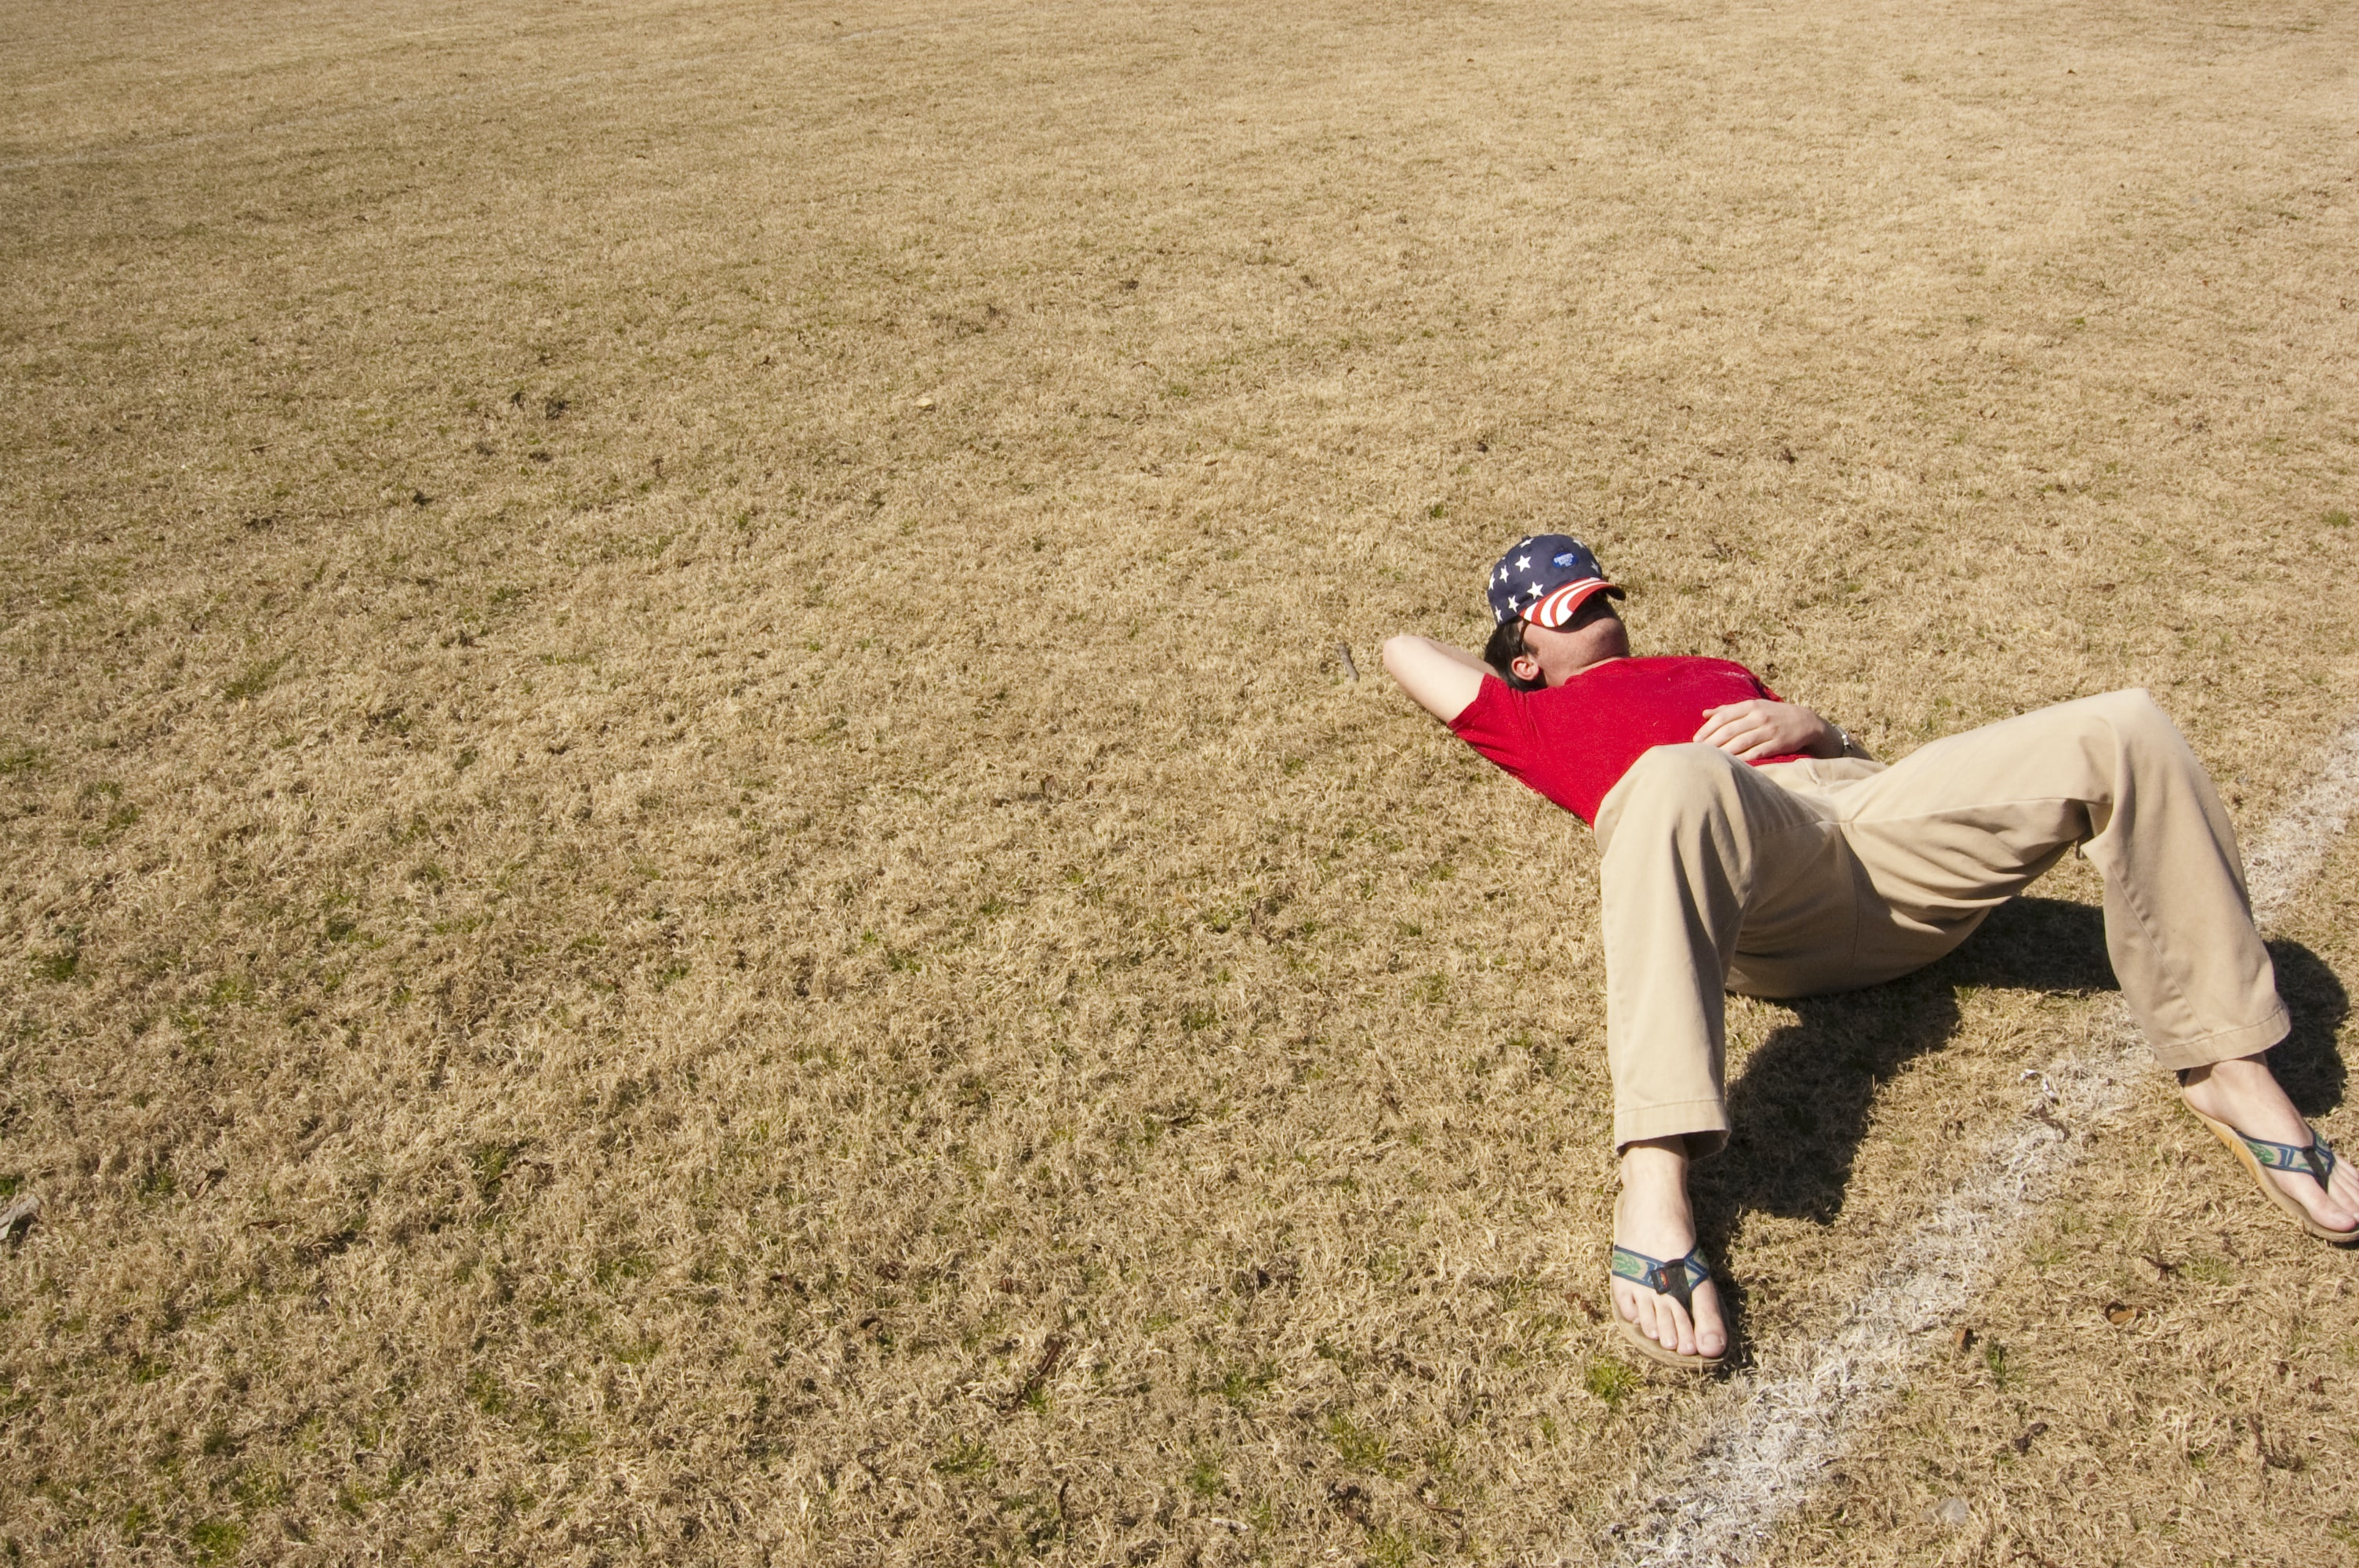 man in red top lying on lawn field during daytime